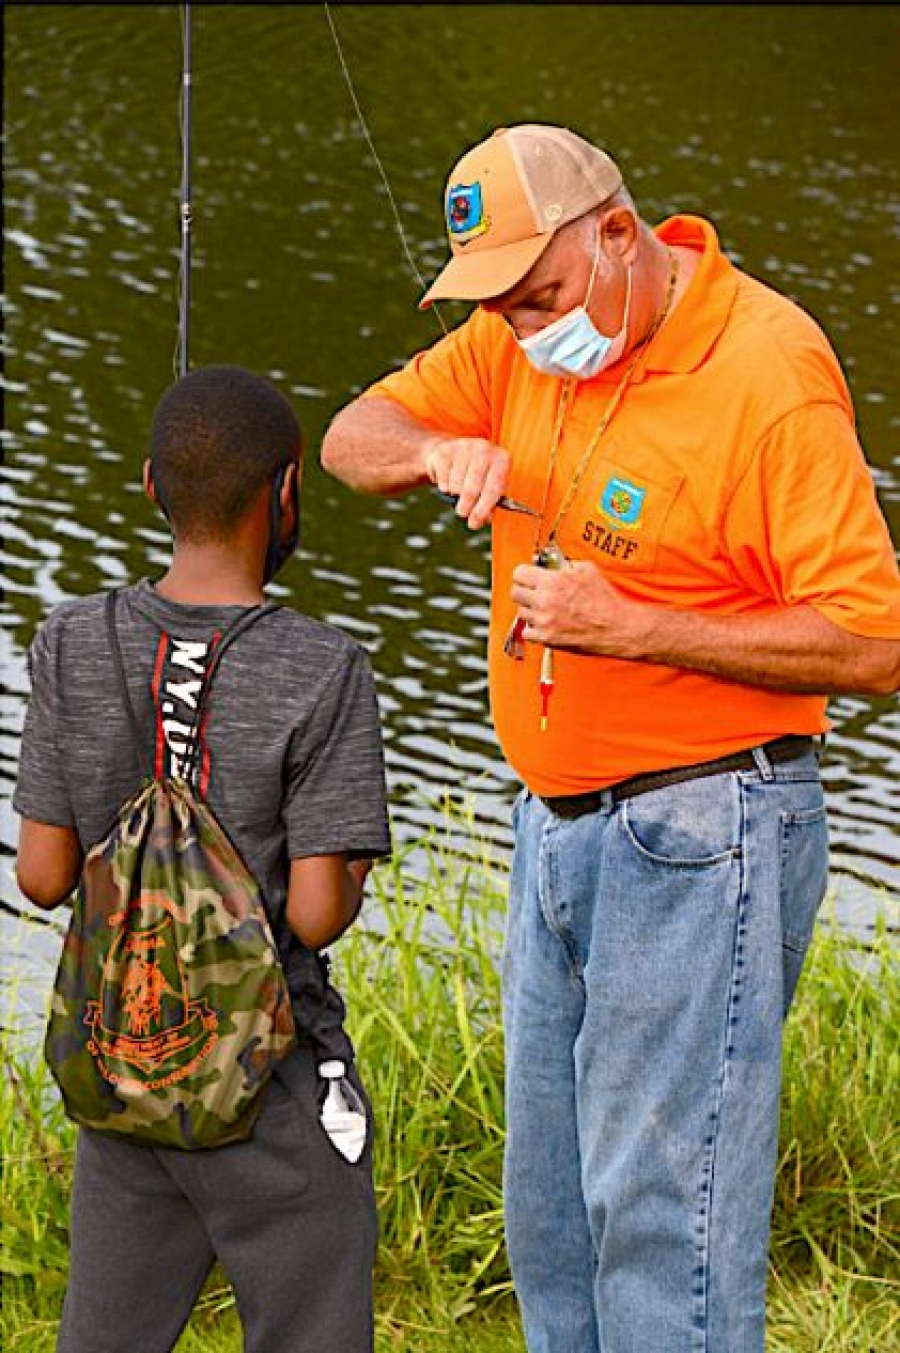 State Agencies Join in Fishing Program for Foster Families, Youths